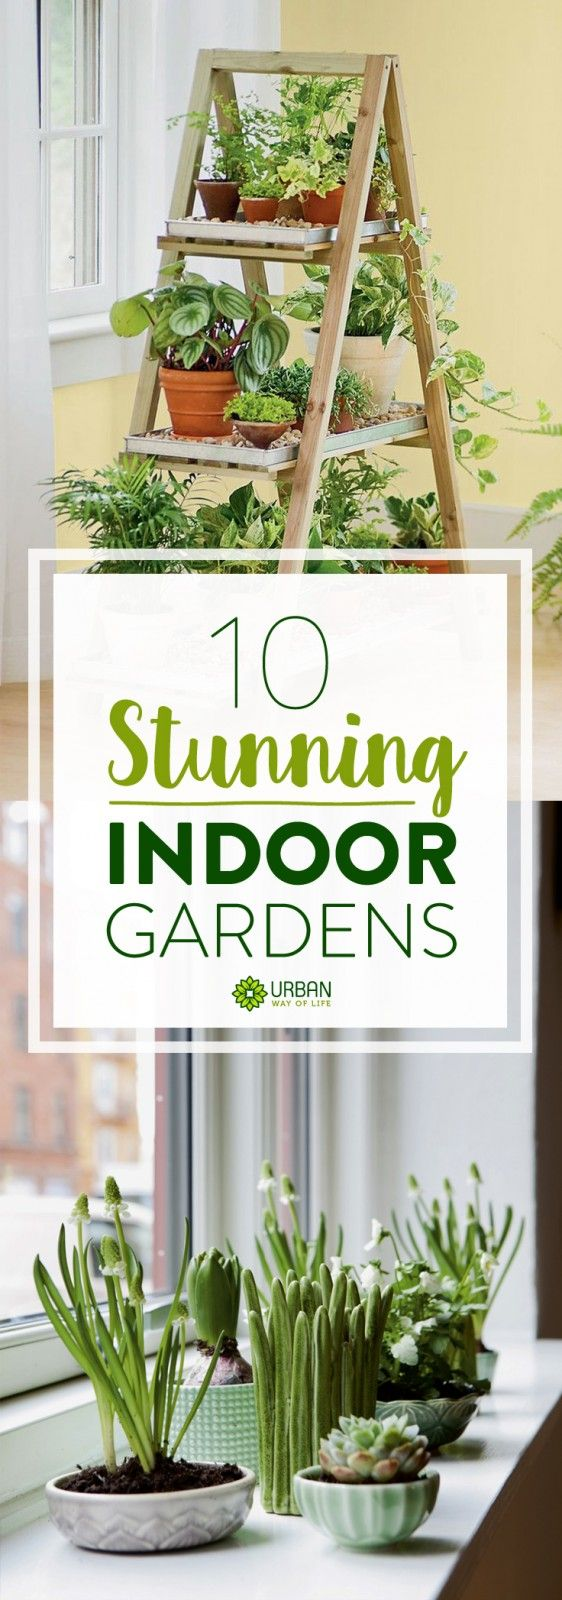 indoor gardening ideas | diy inspiration for your apartment.